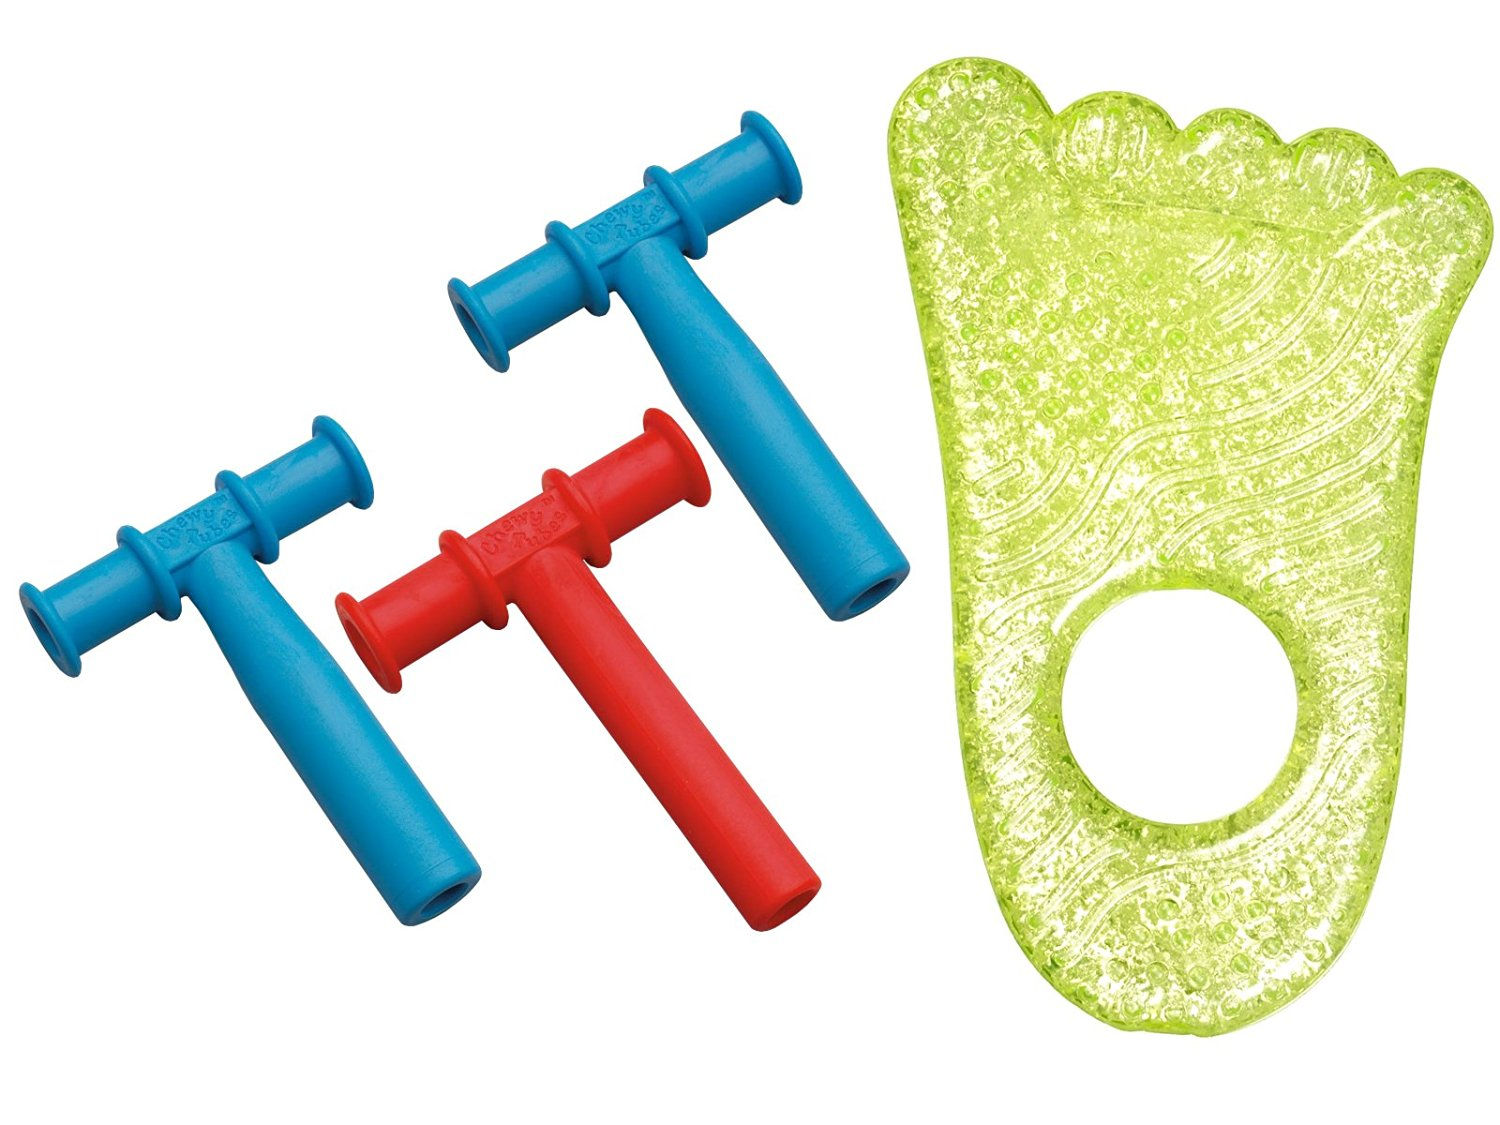 Chewy Tubes Teether 3 Pack, (Blue/Red/Blue) with Fun Ice Chewy Teether